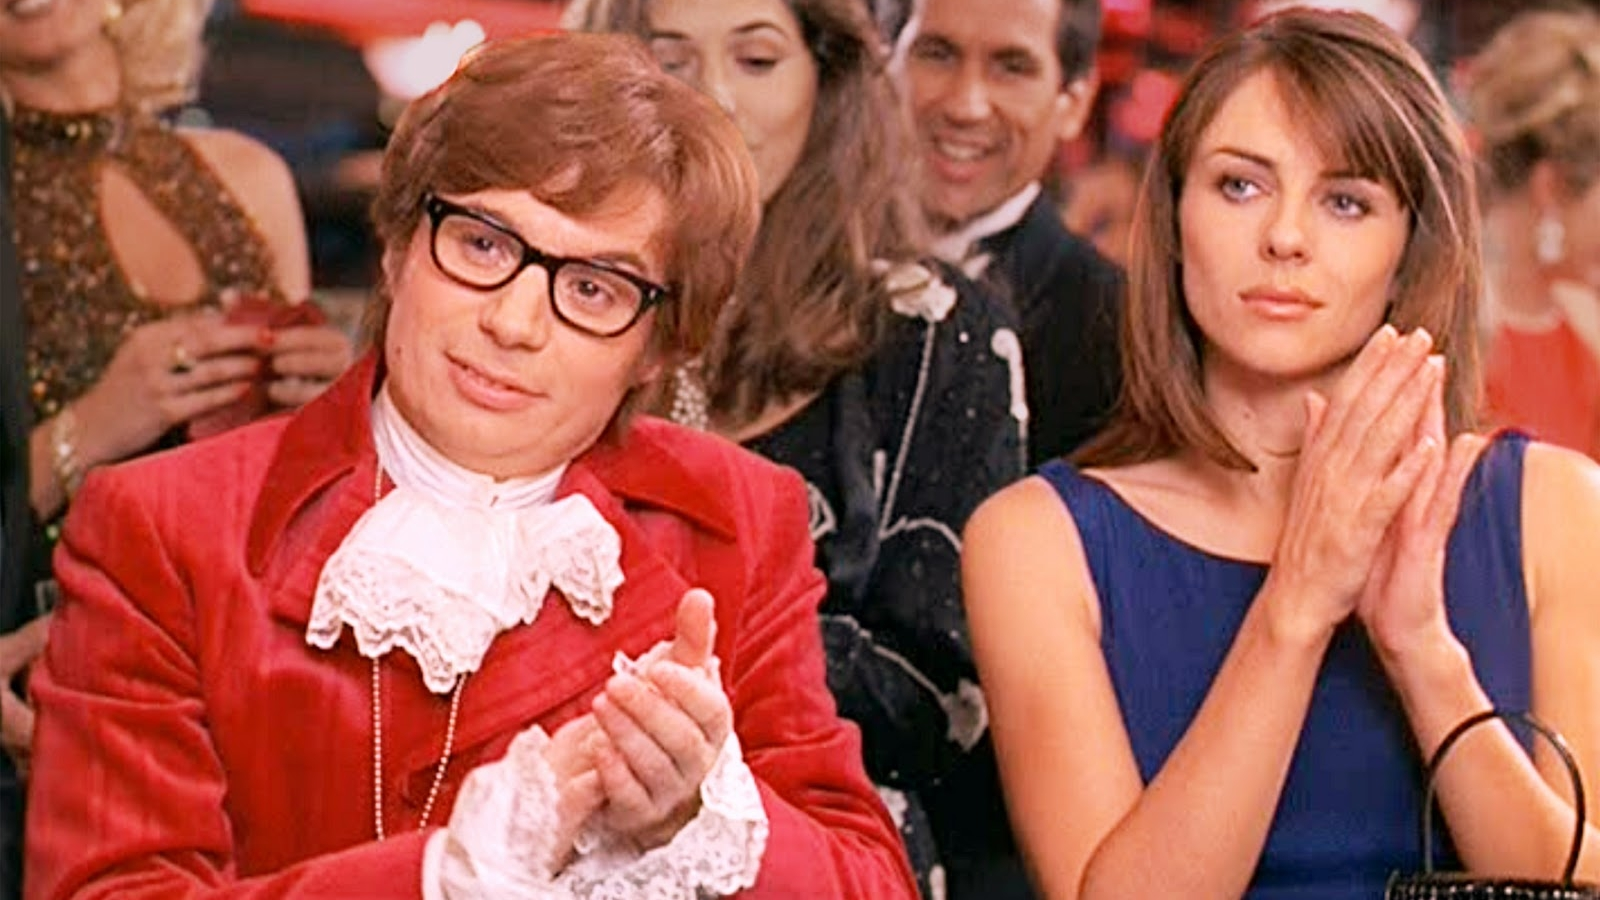 #86) Austin Powers: International Man of Mystery - (1997 - dir. Jay Roach)